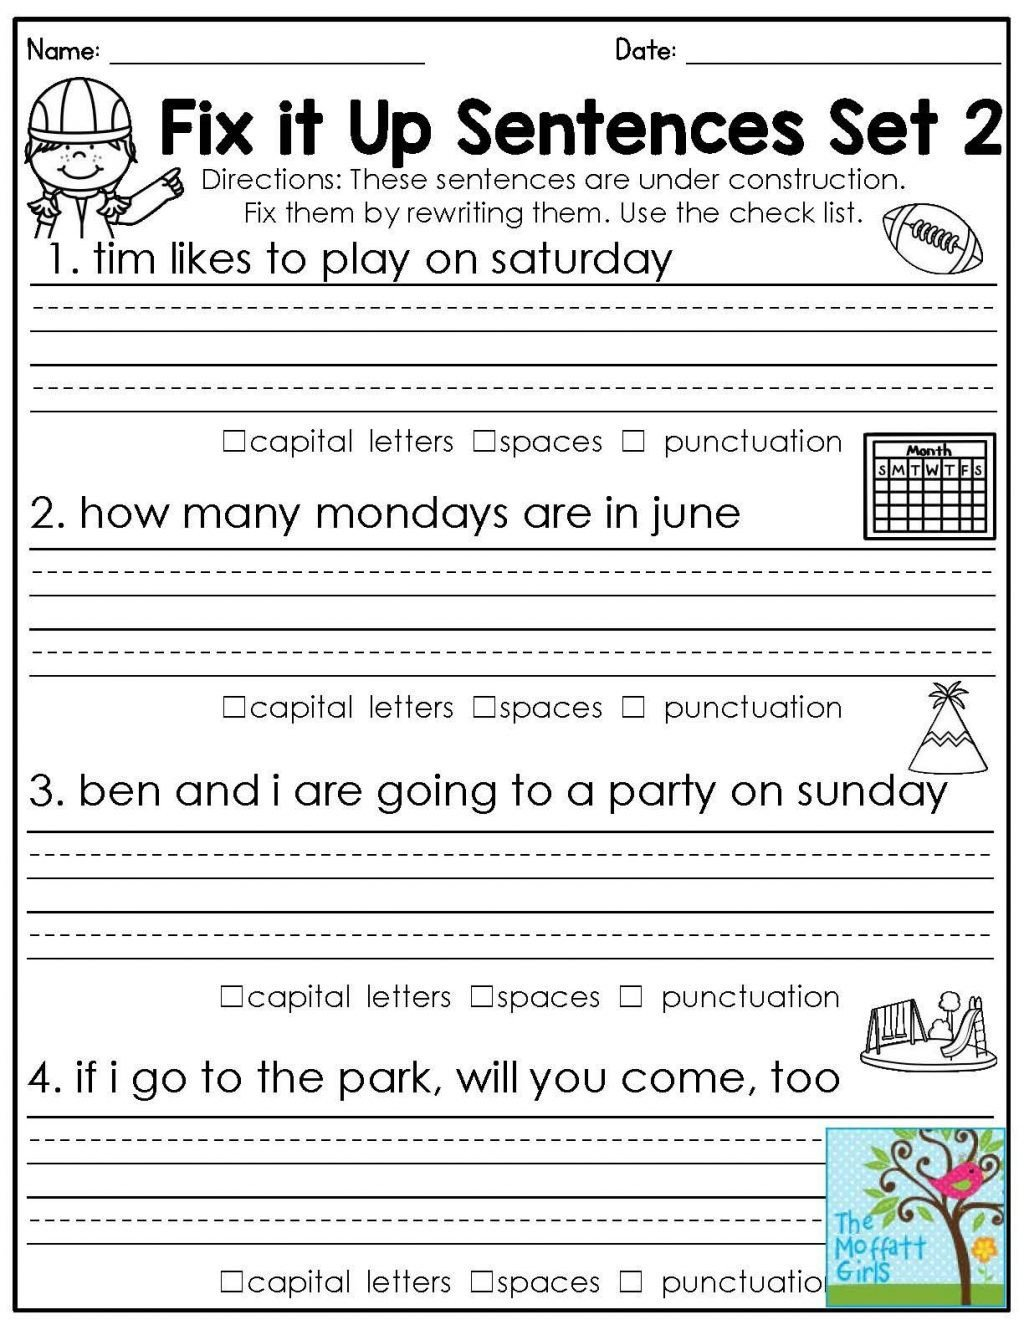 Proofreading Worksheets 5th Grade 4 Free Grammar Worksheets Third Grade 3 Capitalization